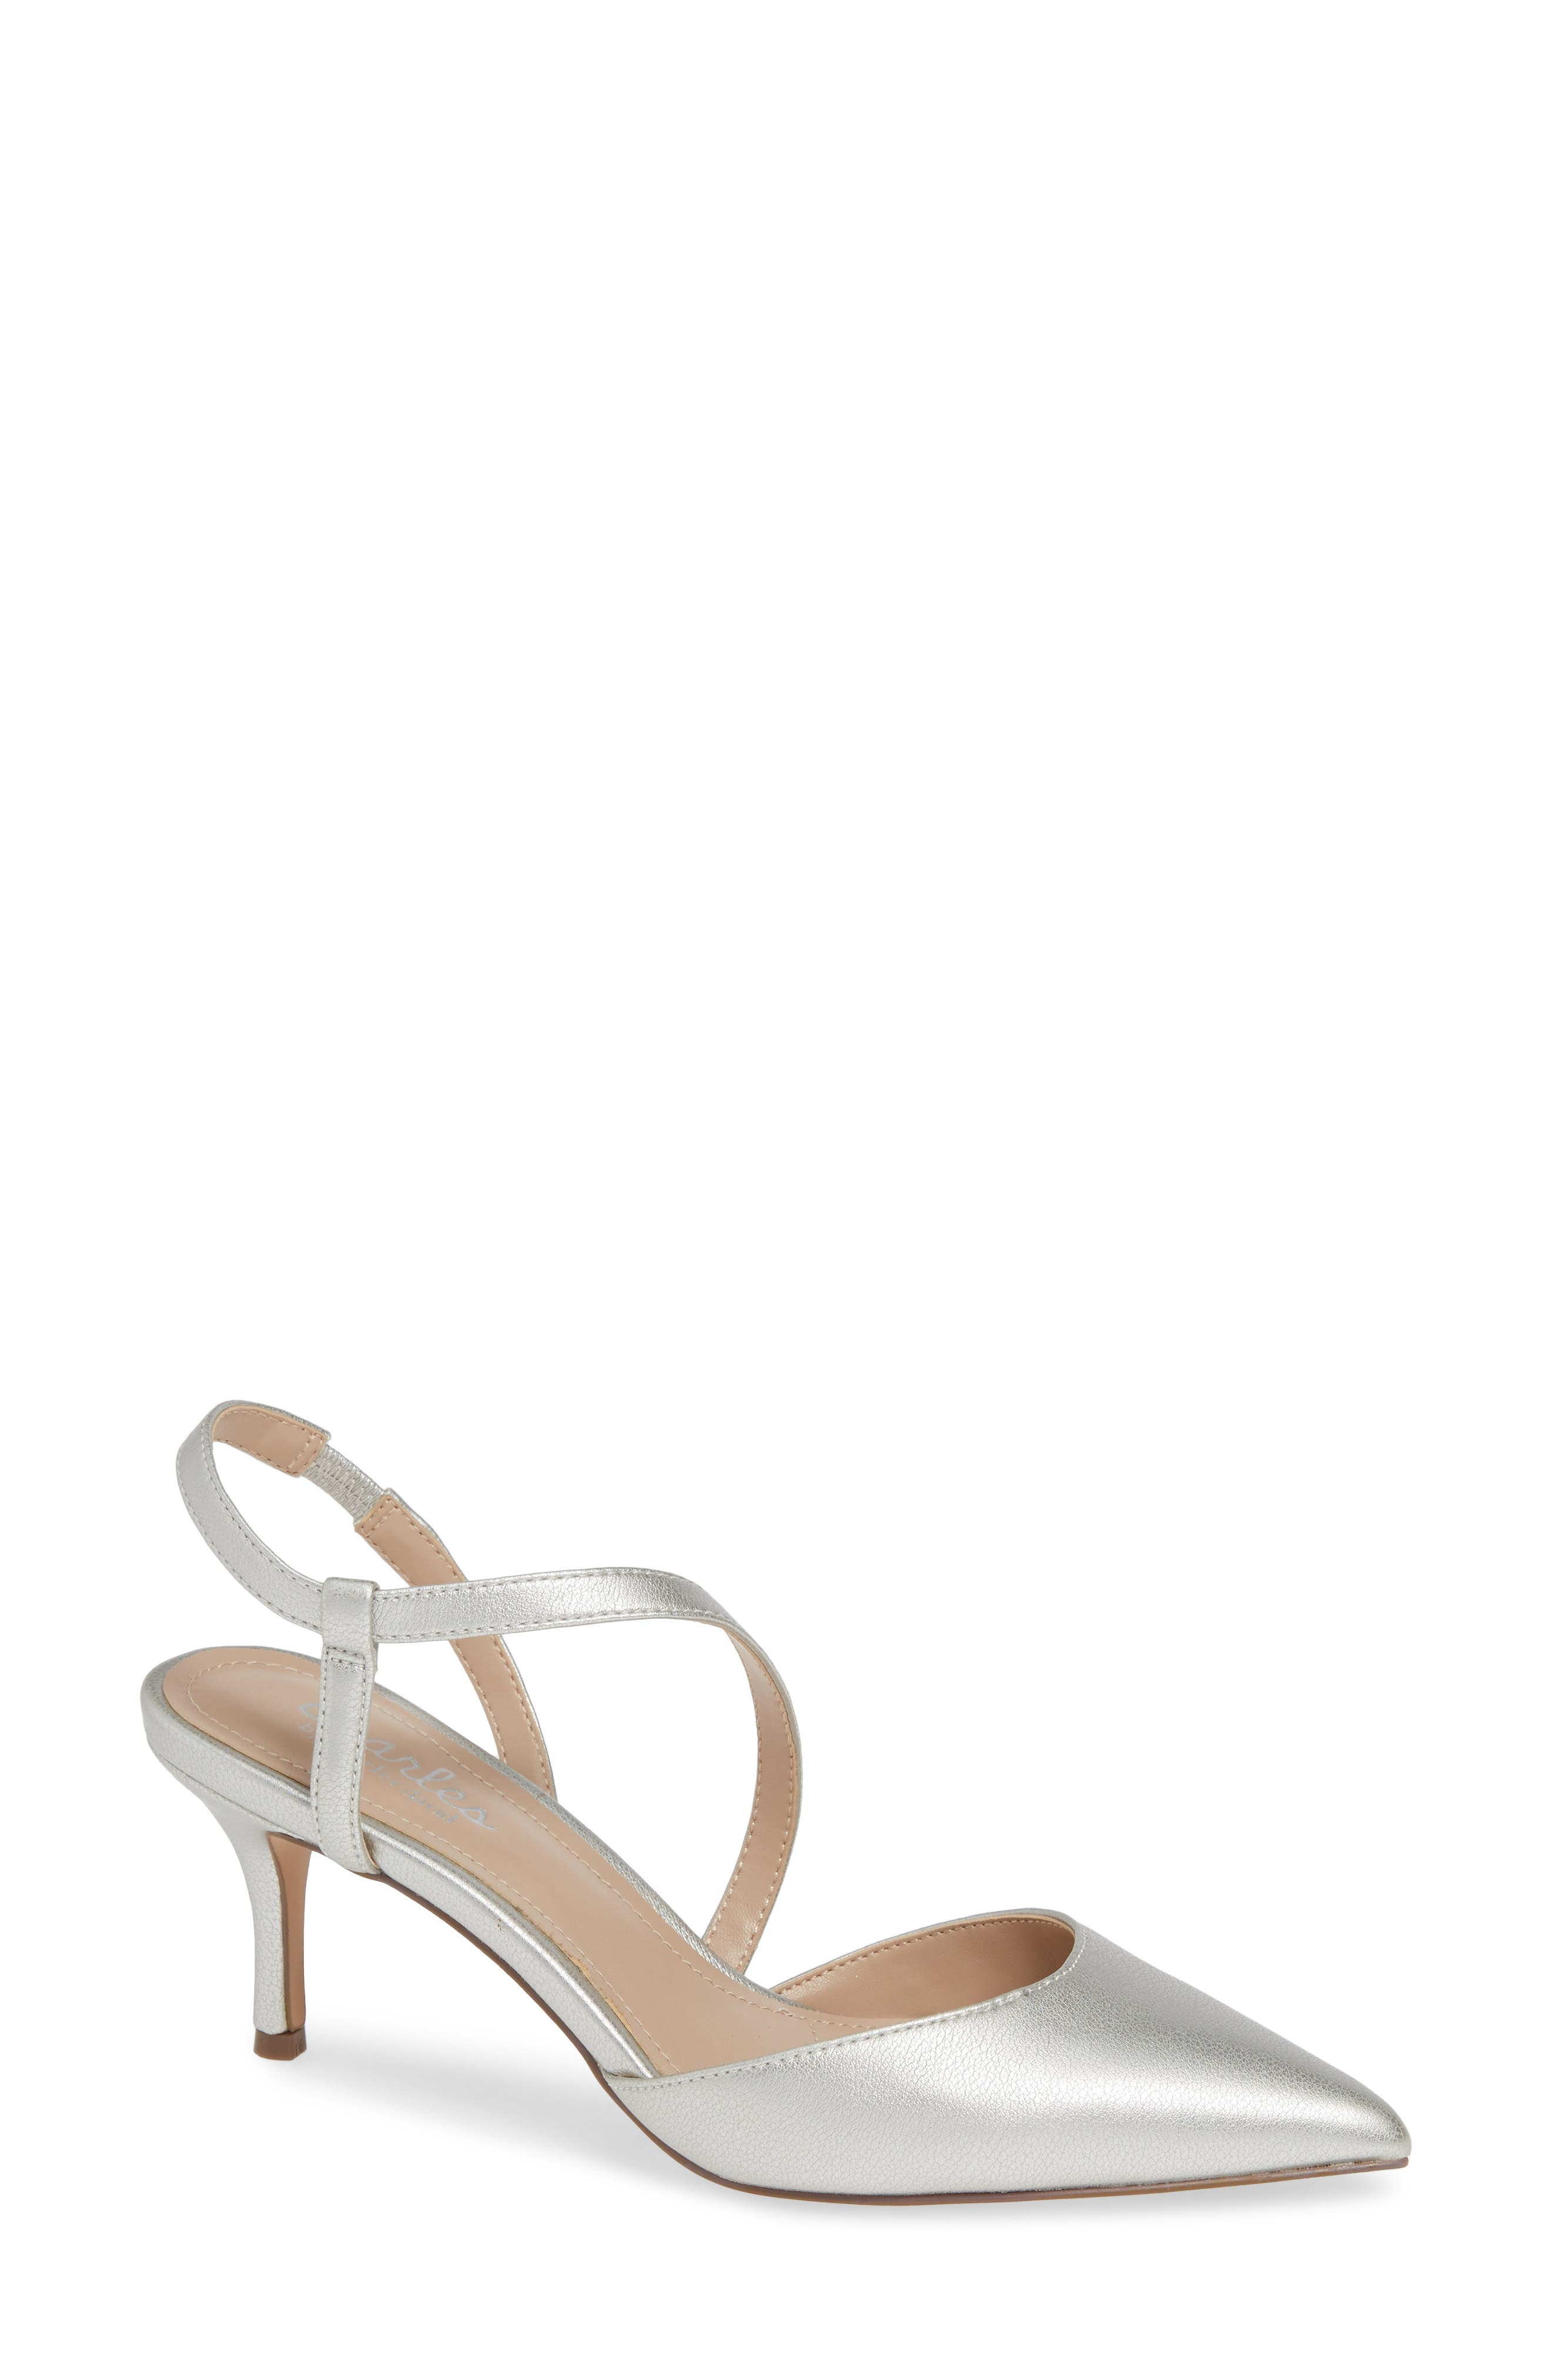 CHARLES BY CHARLES DAVID Alda Pump, Main, color, SILVER FAUX LEATHER